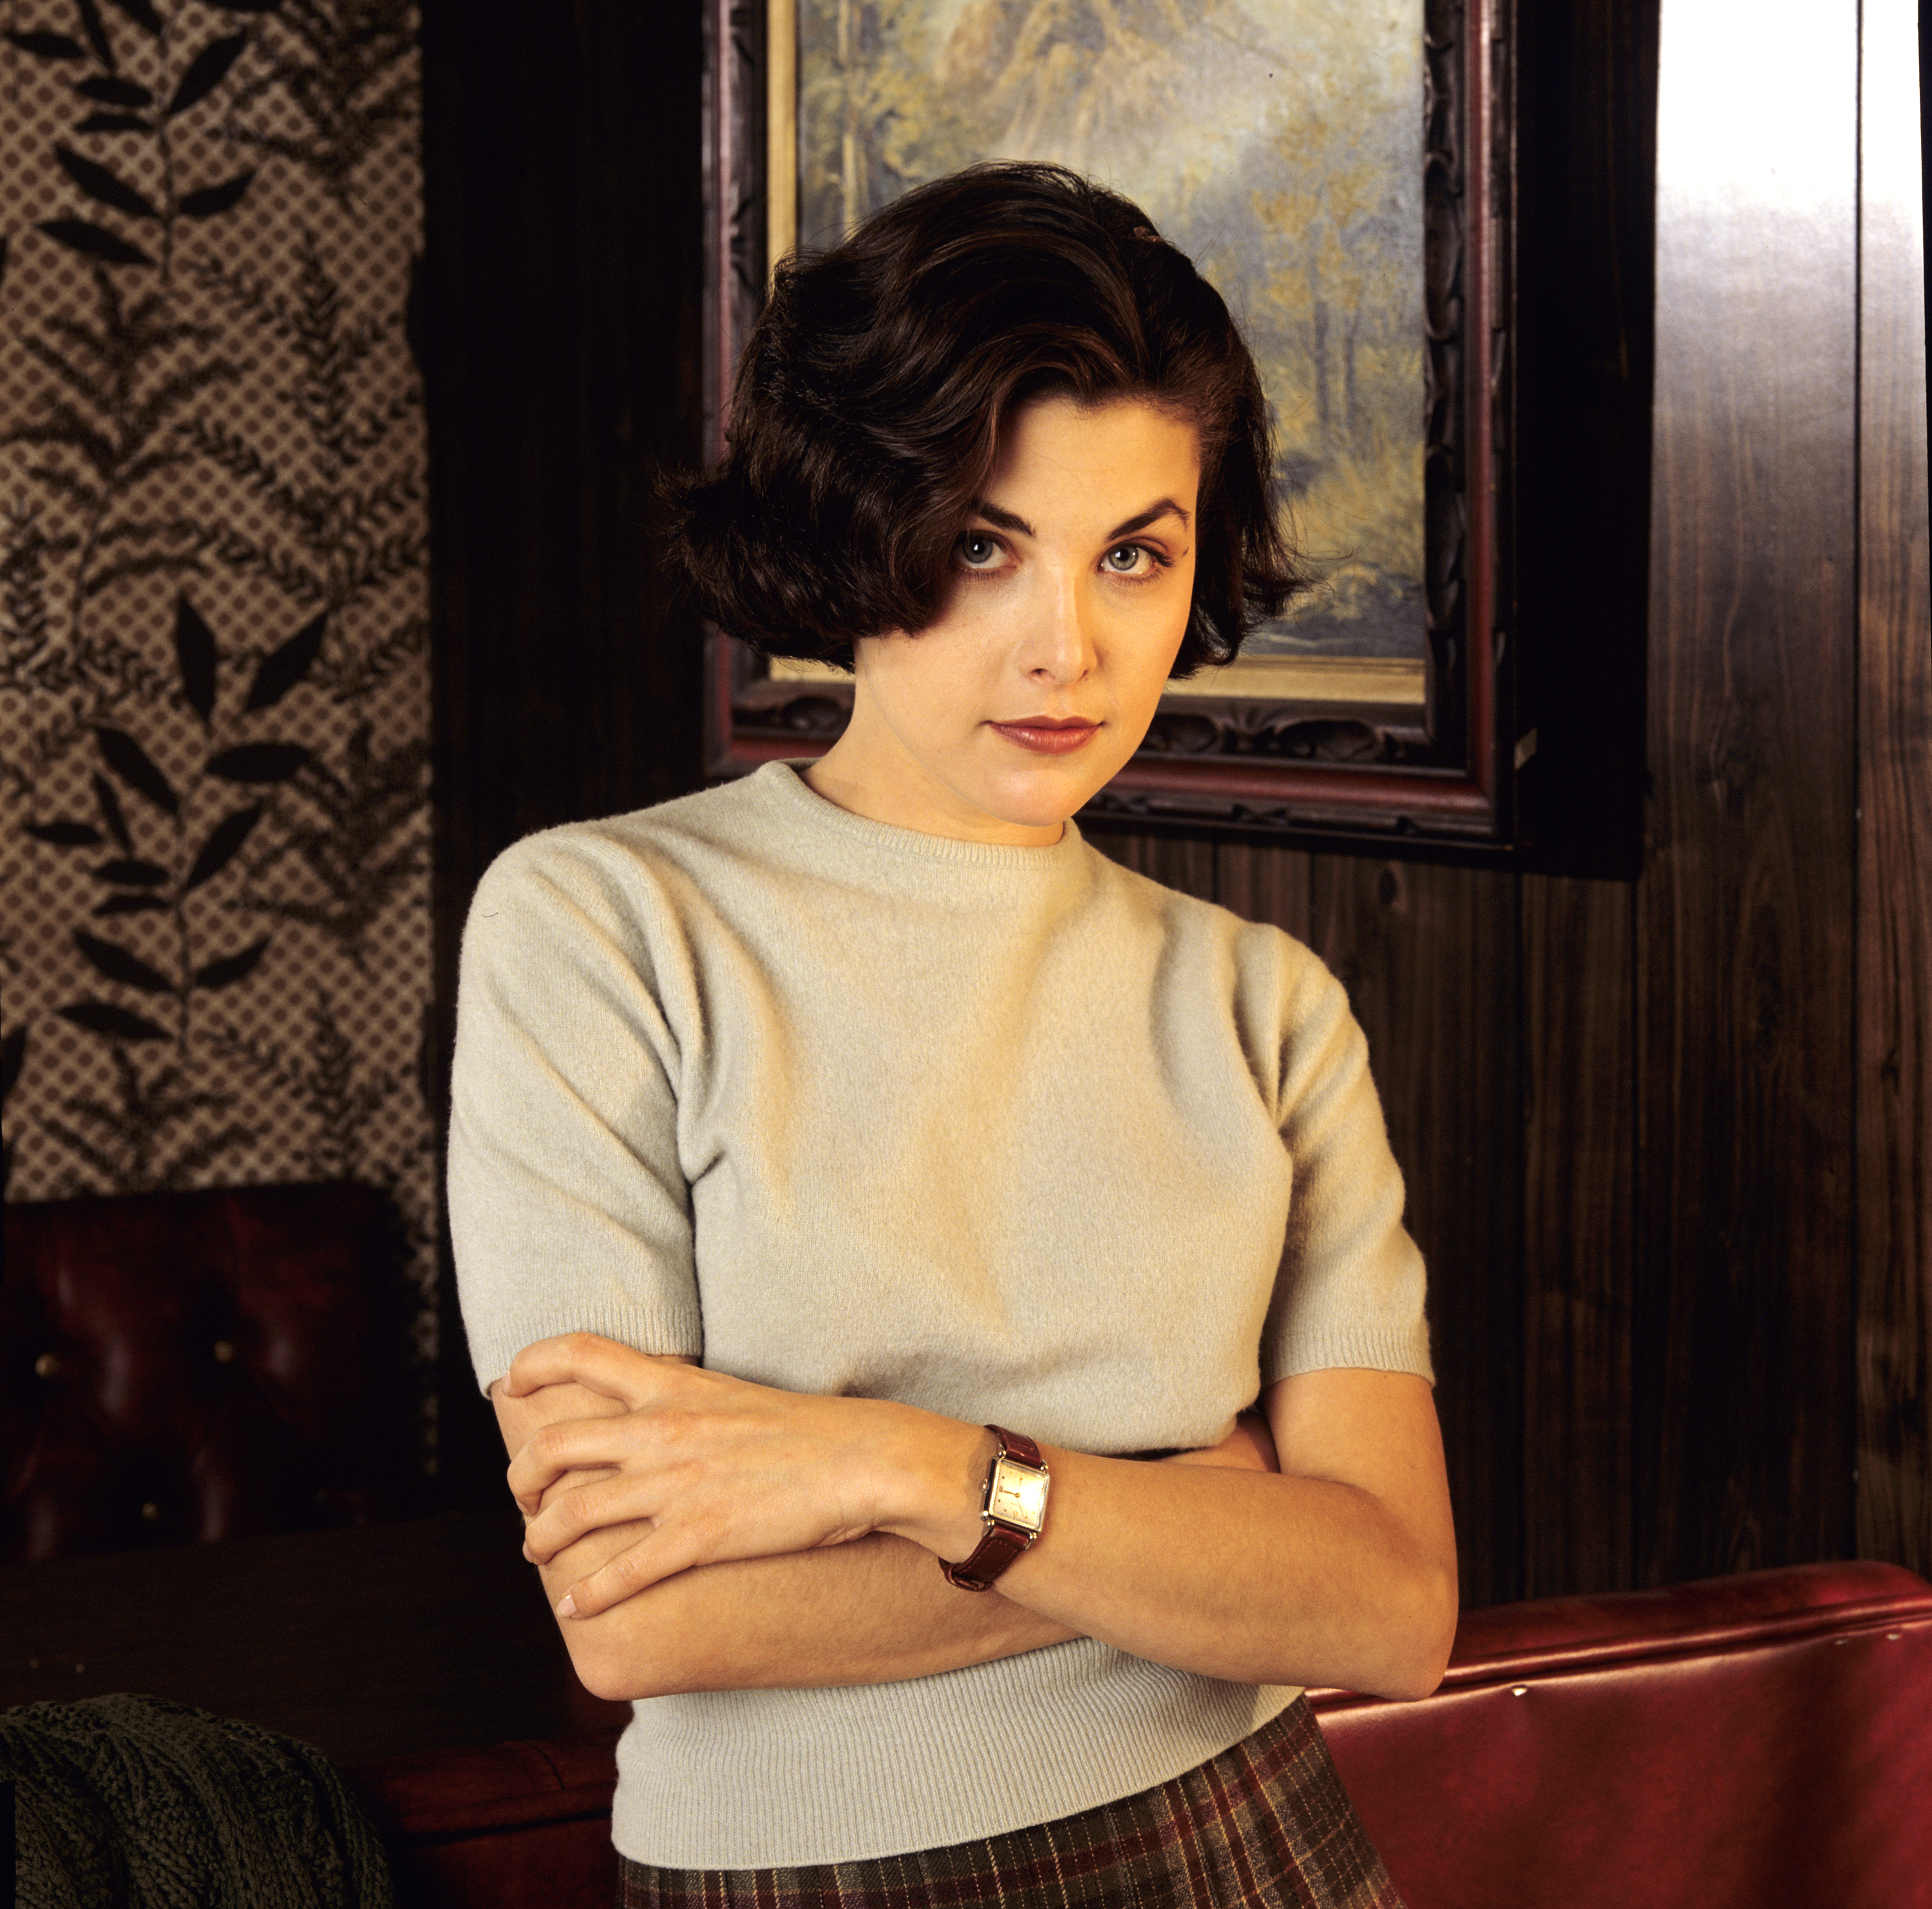 Actress Sherilyn Fenn who played Audrey Horne on the television show 'Twin Peaks' on Nov. 20, 1989.